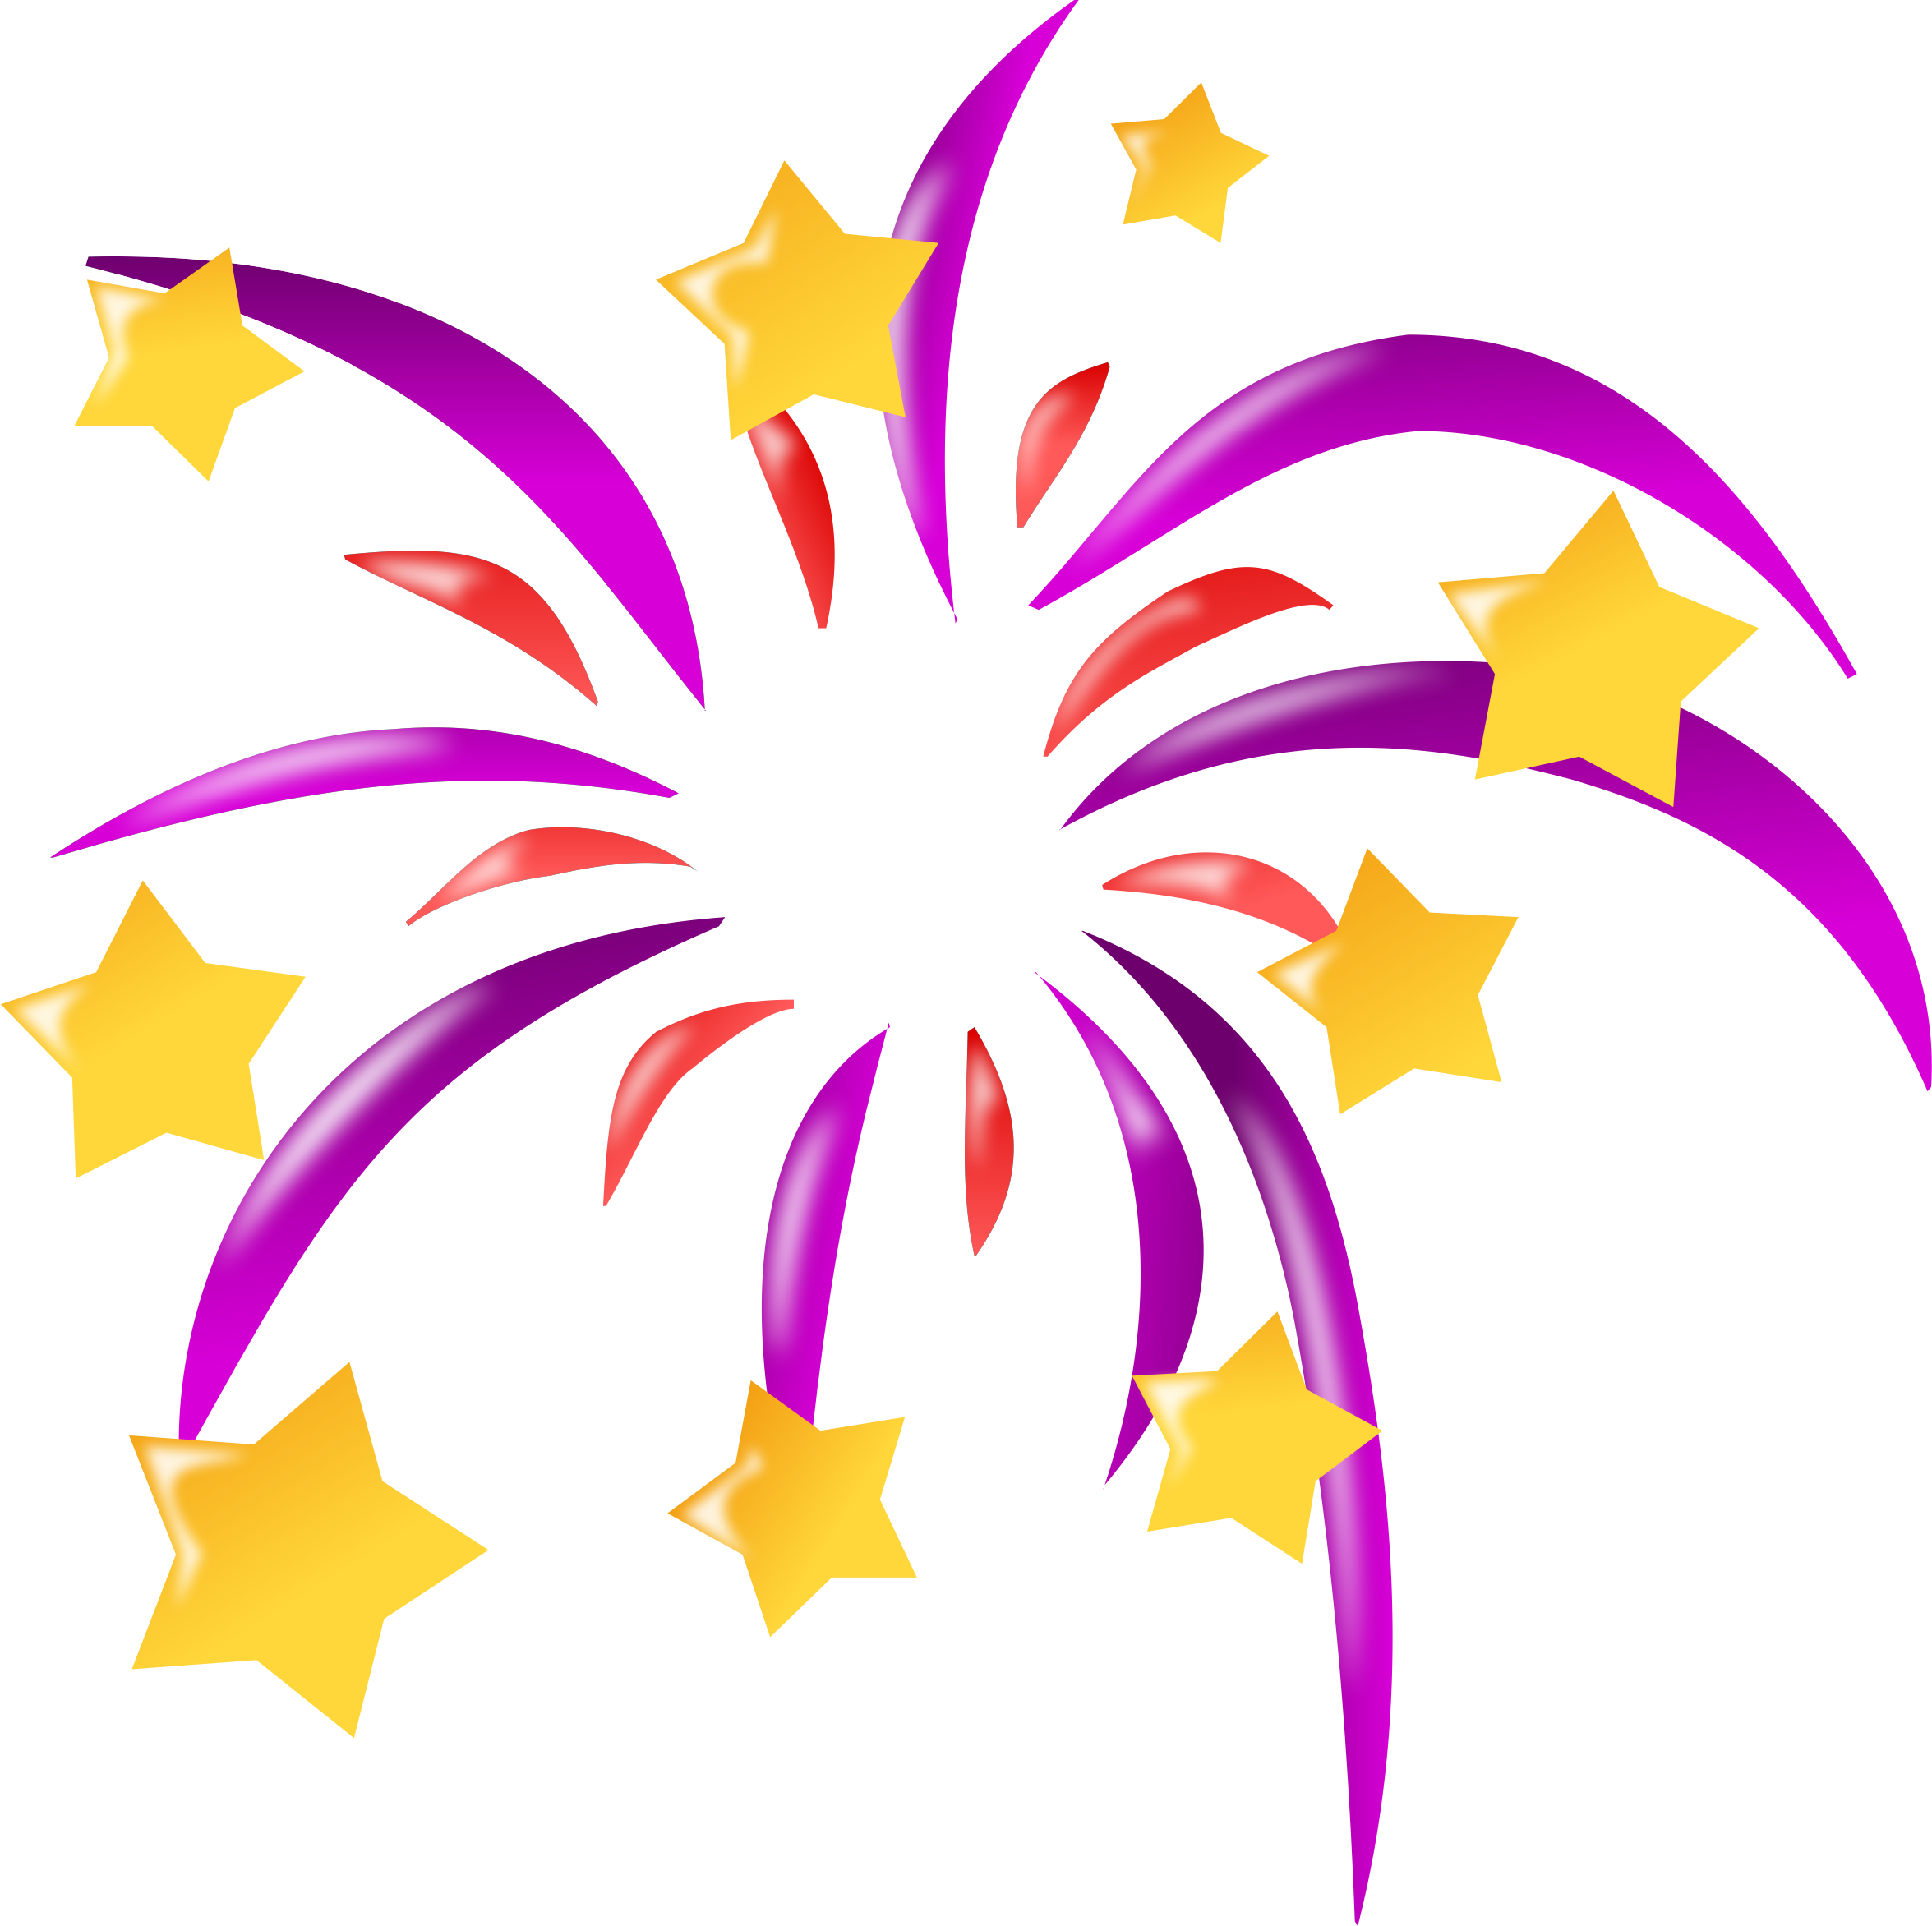 Free fireworks clipart clipart image #4117